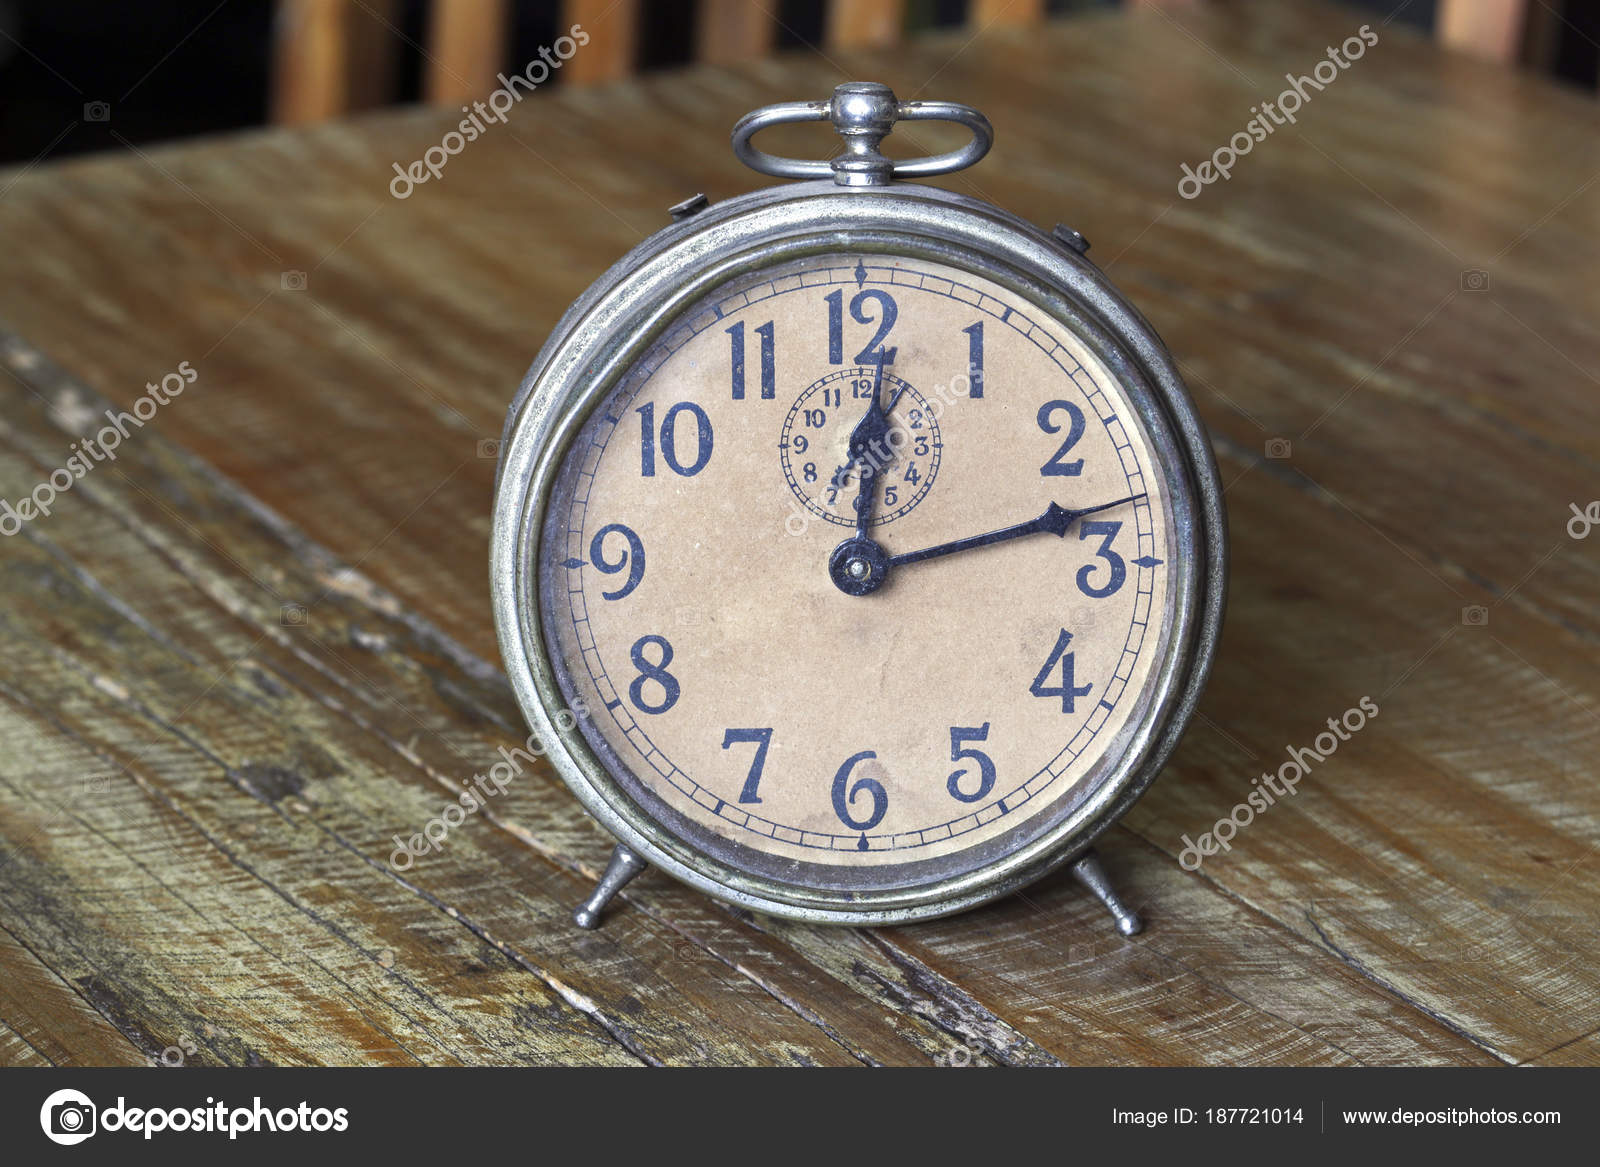 Old clock — Stock Photo © Jaboticabafotos #187721014